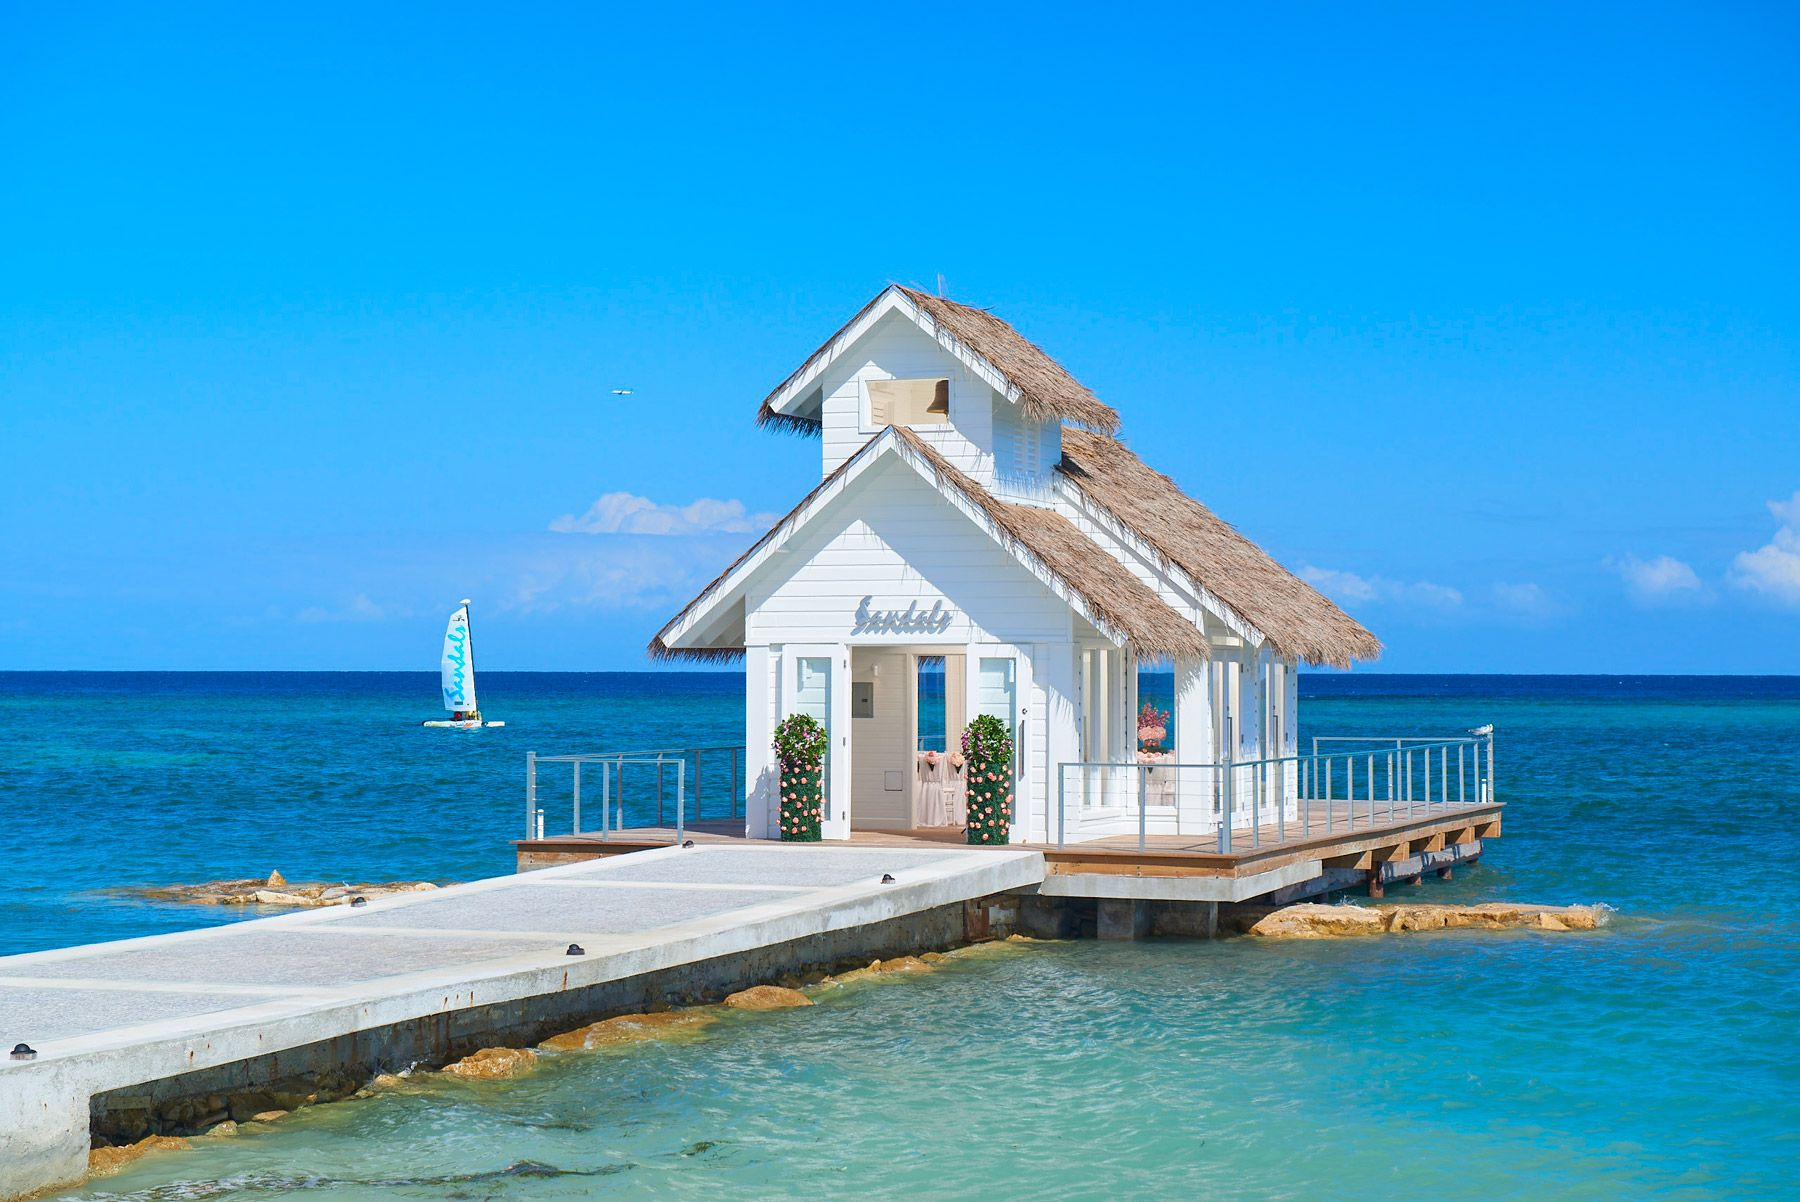 sandalas montego bay over-the-water chapel